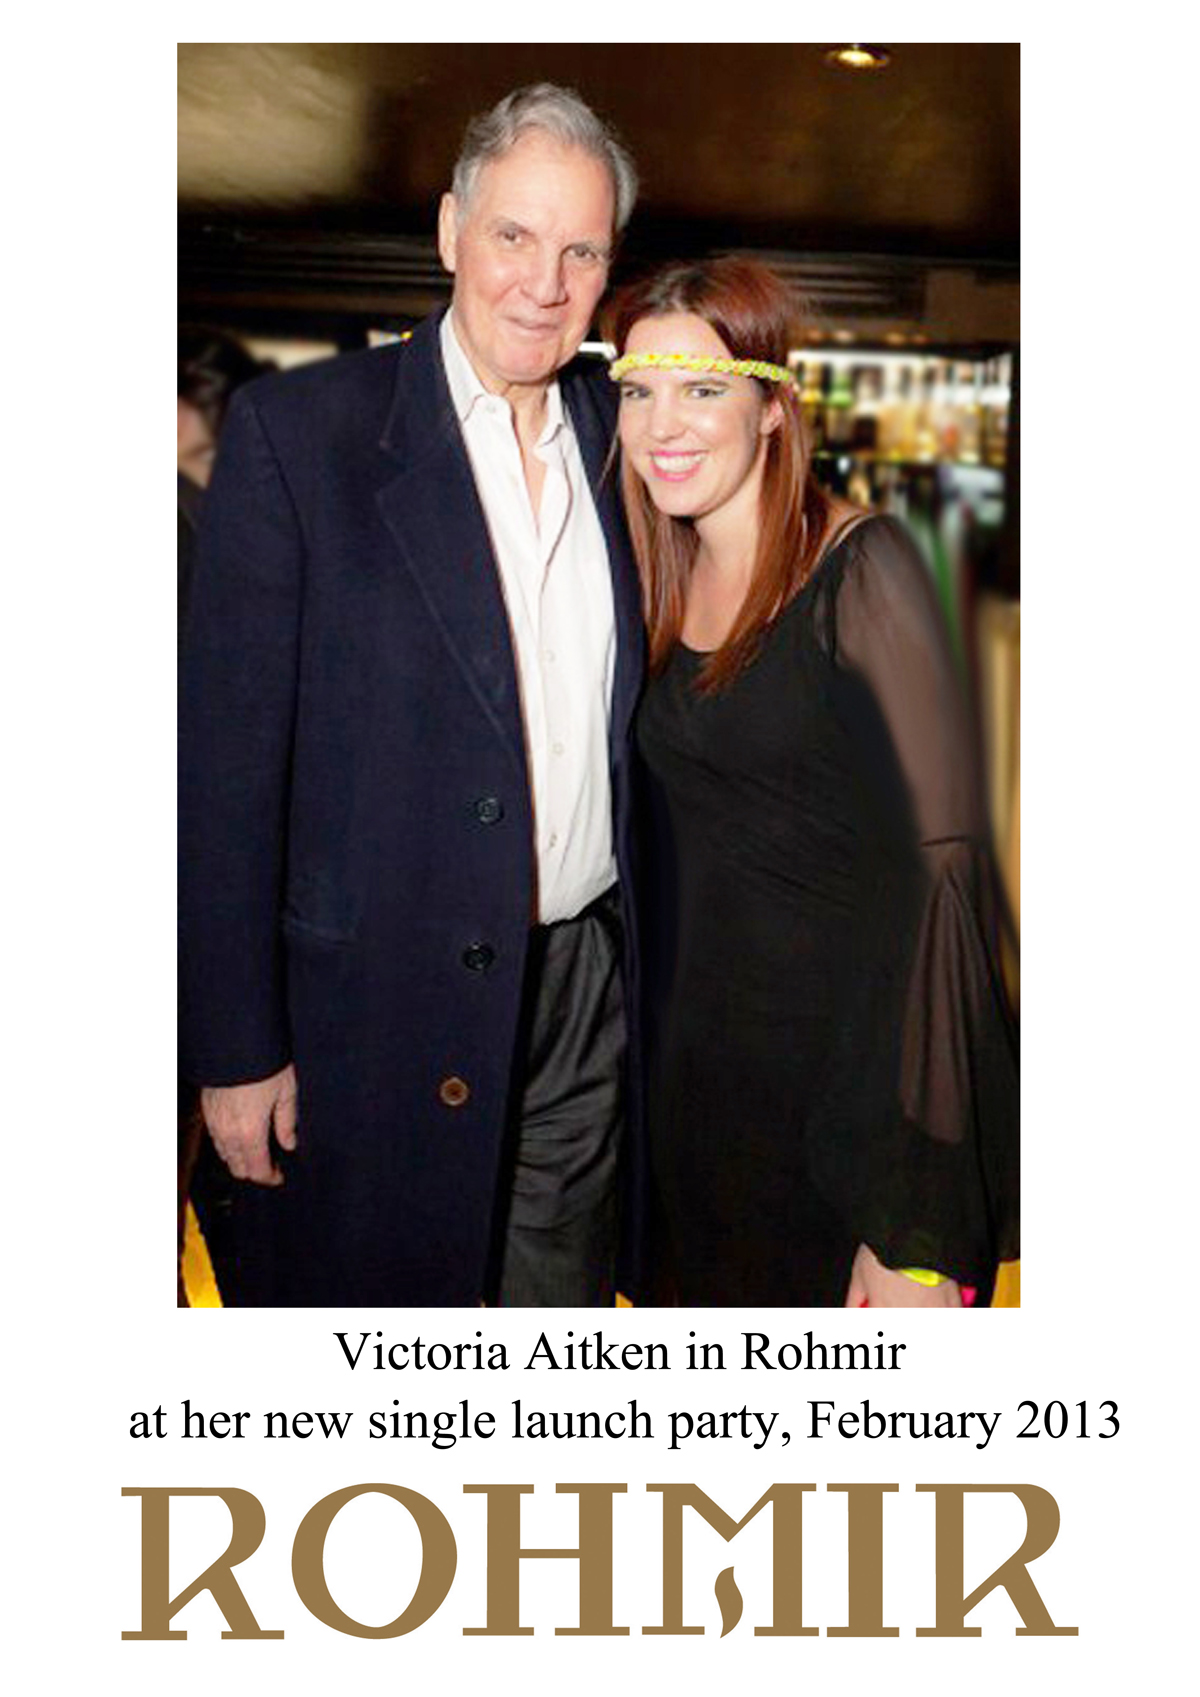 Victoria Aitken in Rohmir at her new single launch party Feb 2013